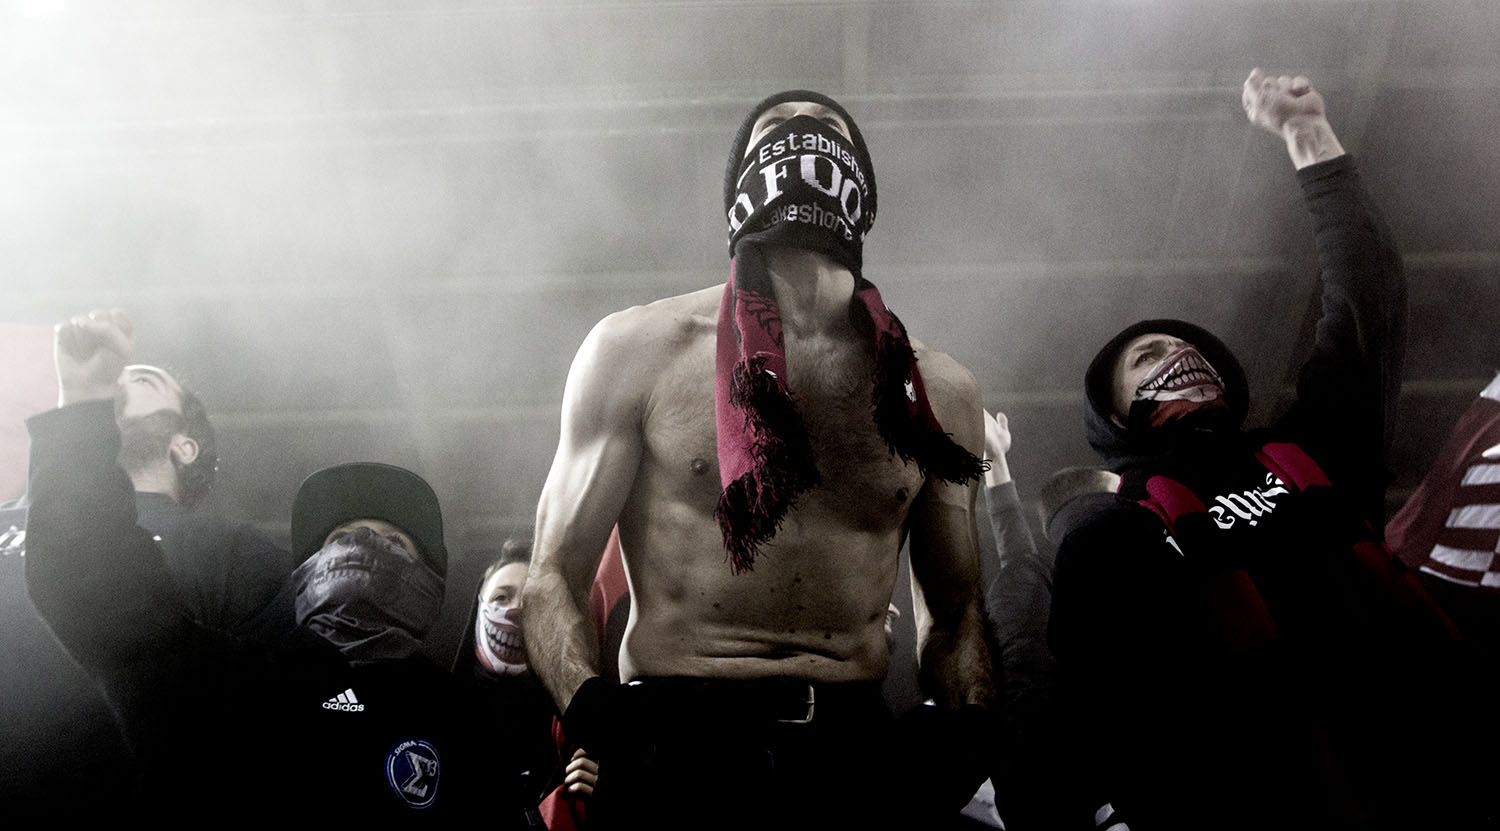 A shirtless south end supporter in the smoke during a Major League Soccer game against Atalnta United FC. Image by Dennis Marciniak of denMAR Photography.